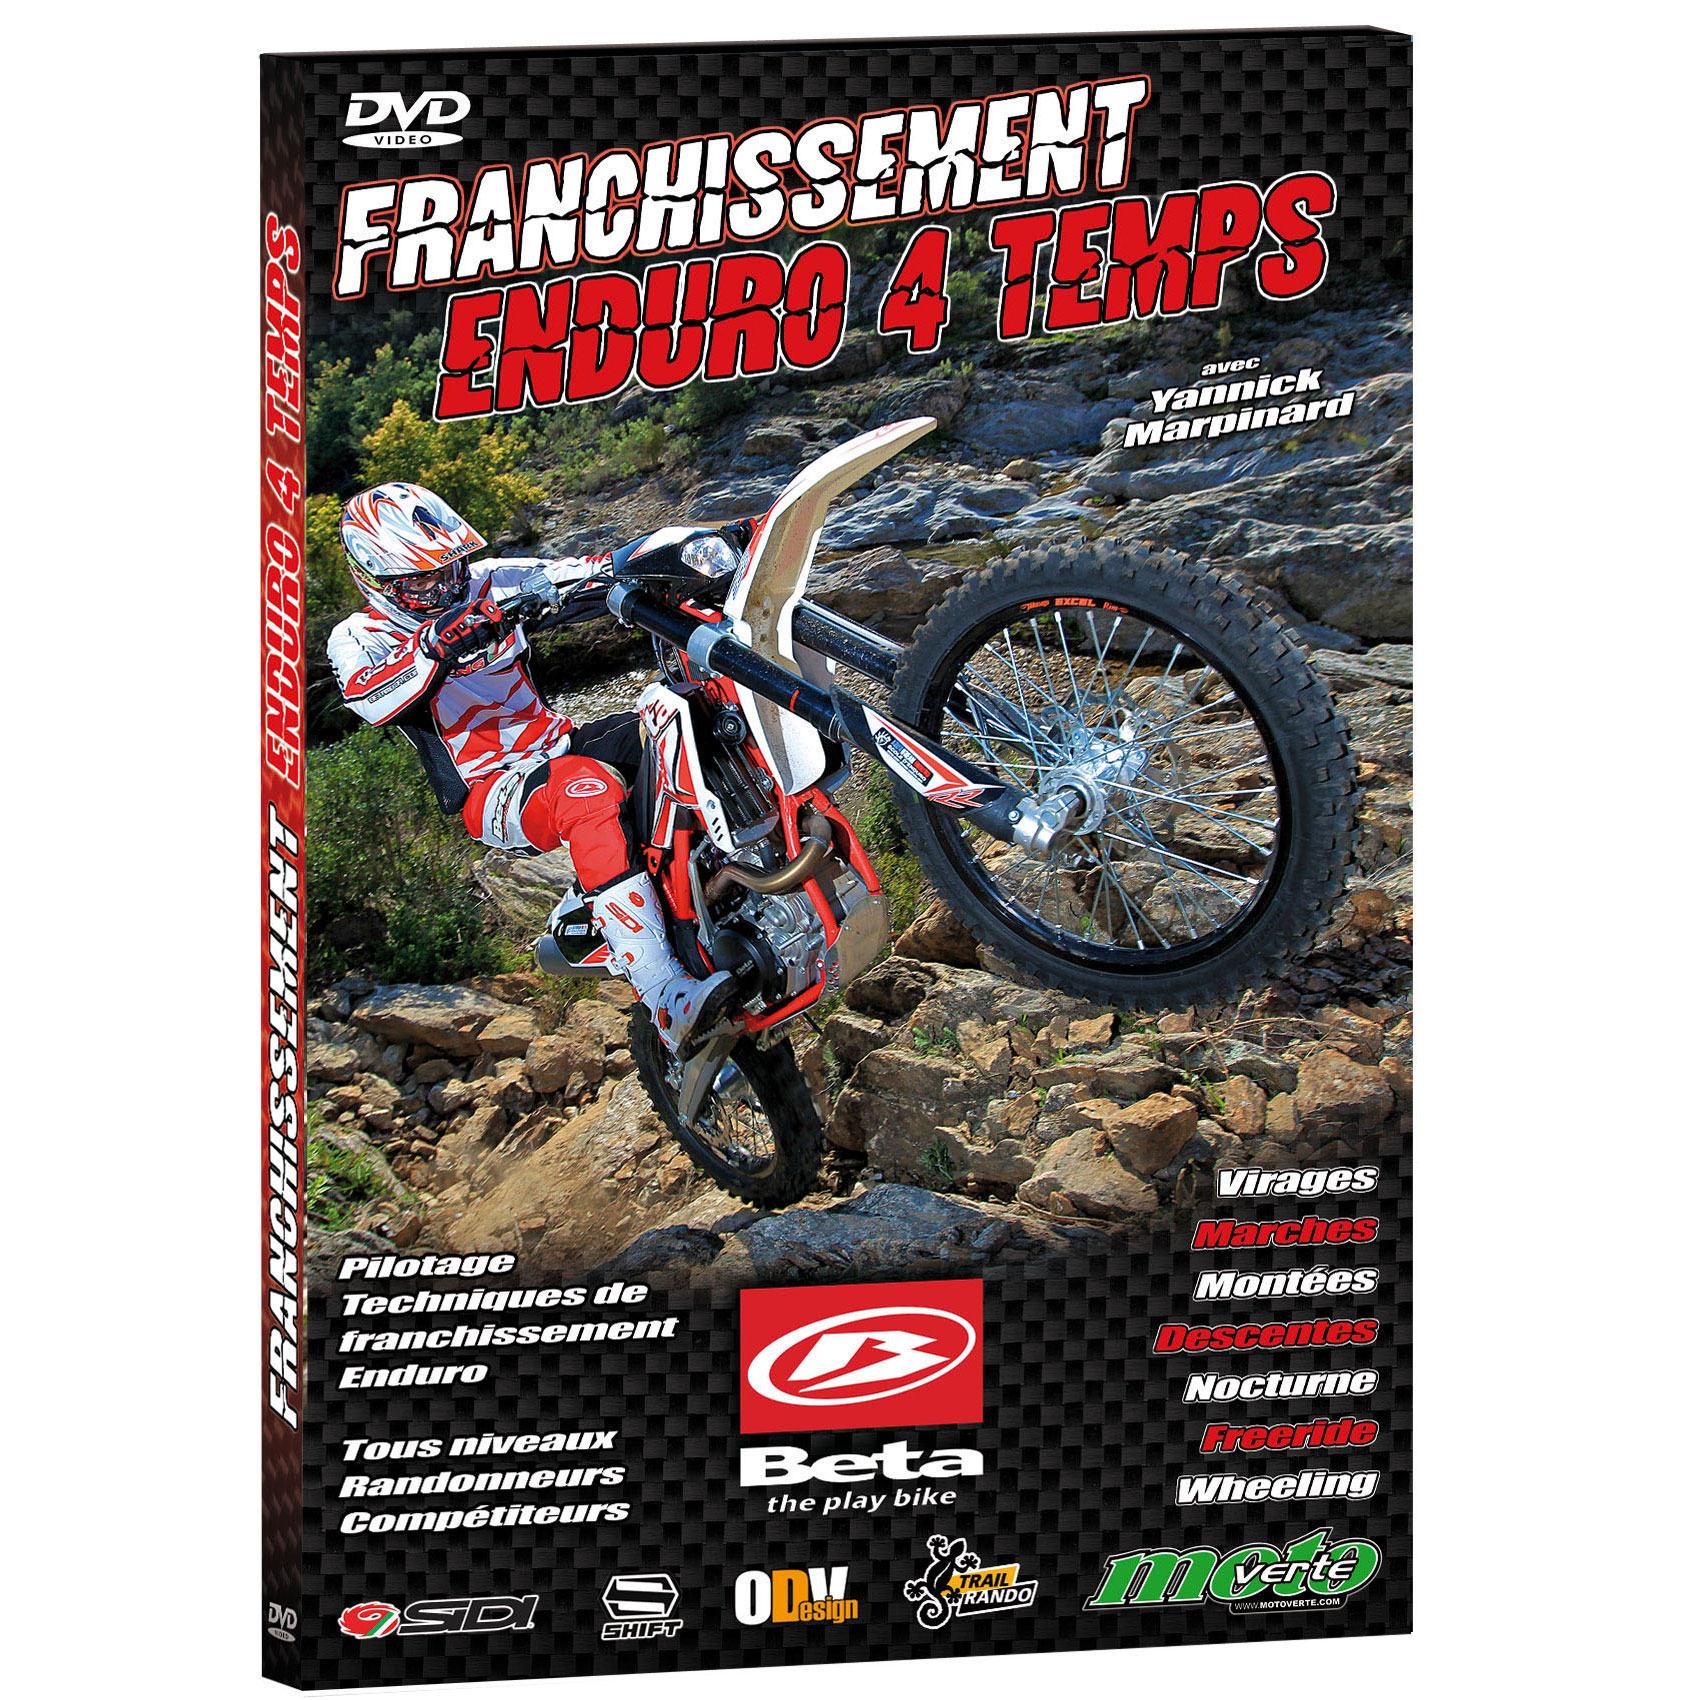 DVD Franchissements Enduro